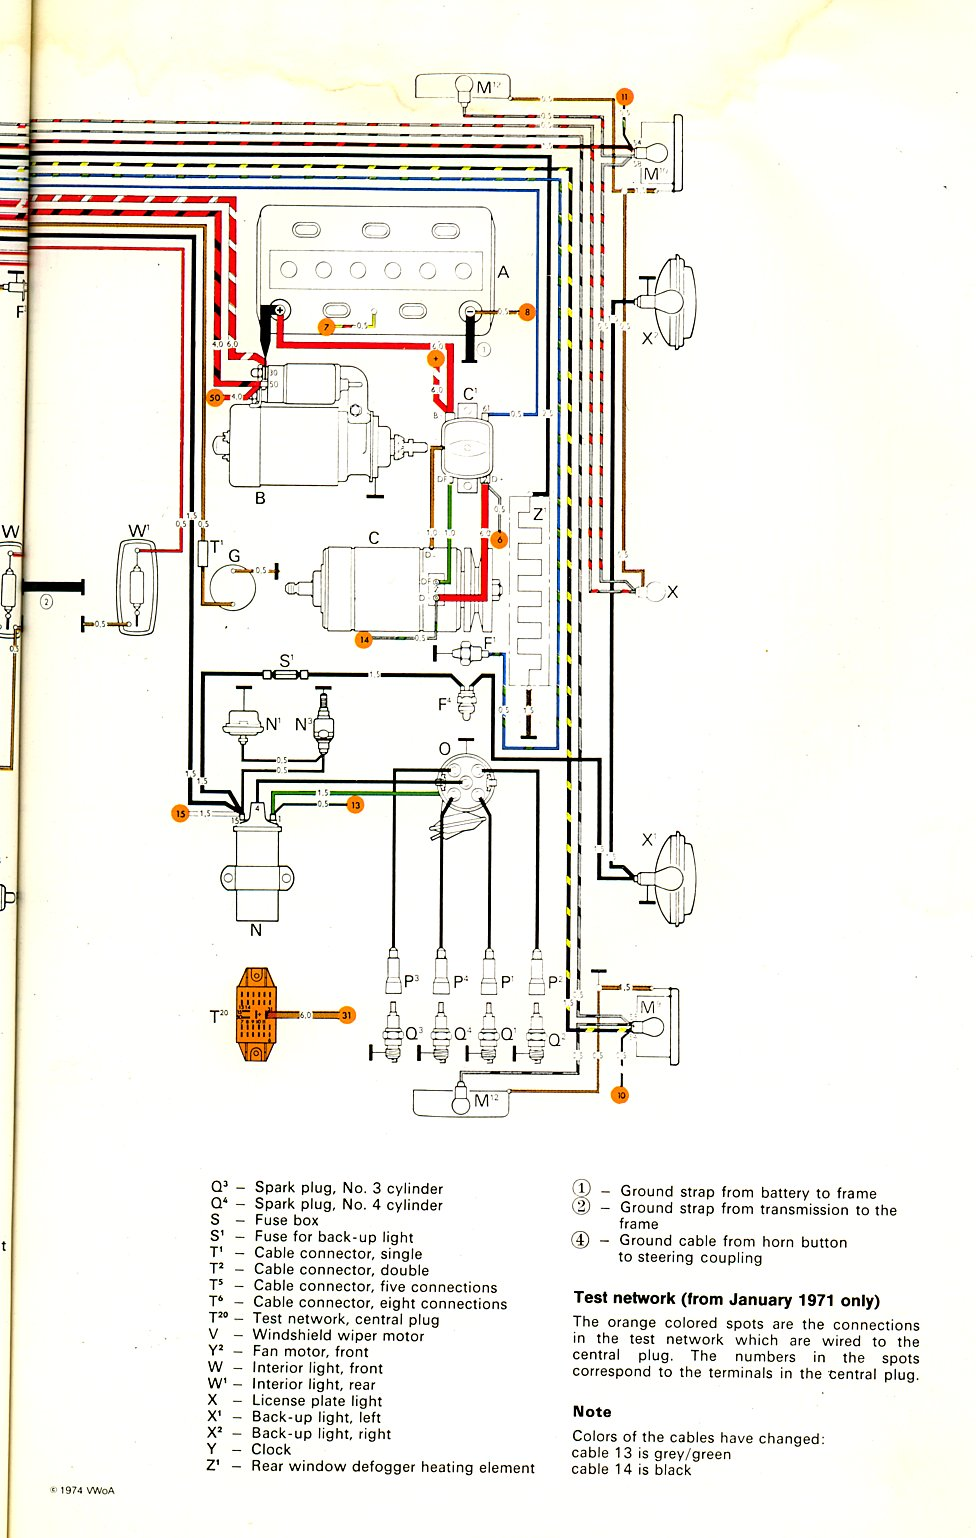 baybus_71b thesamba com type 2 wiring diagrams 1968 corvette wiring diagram at readyjetset.co